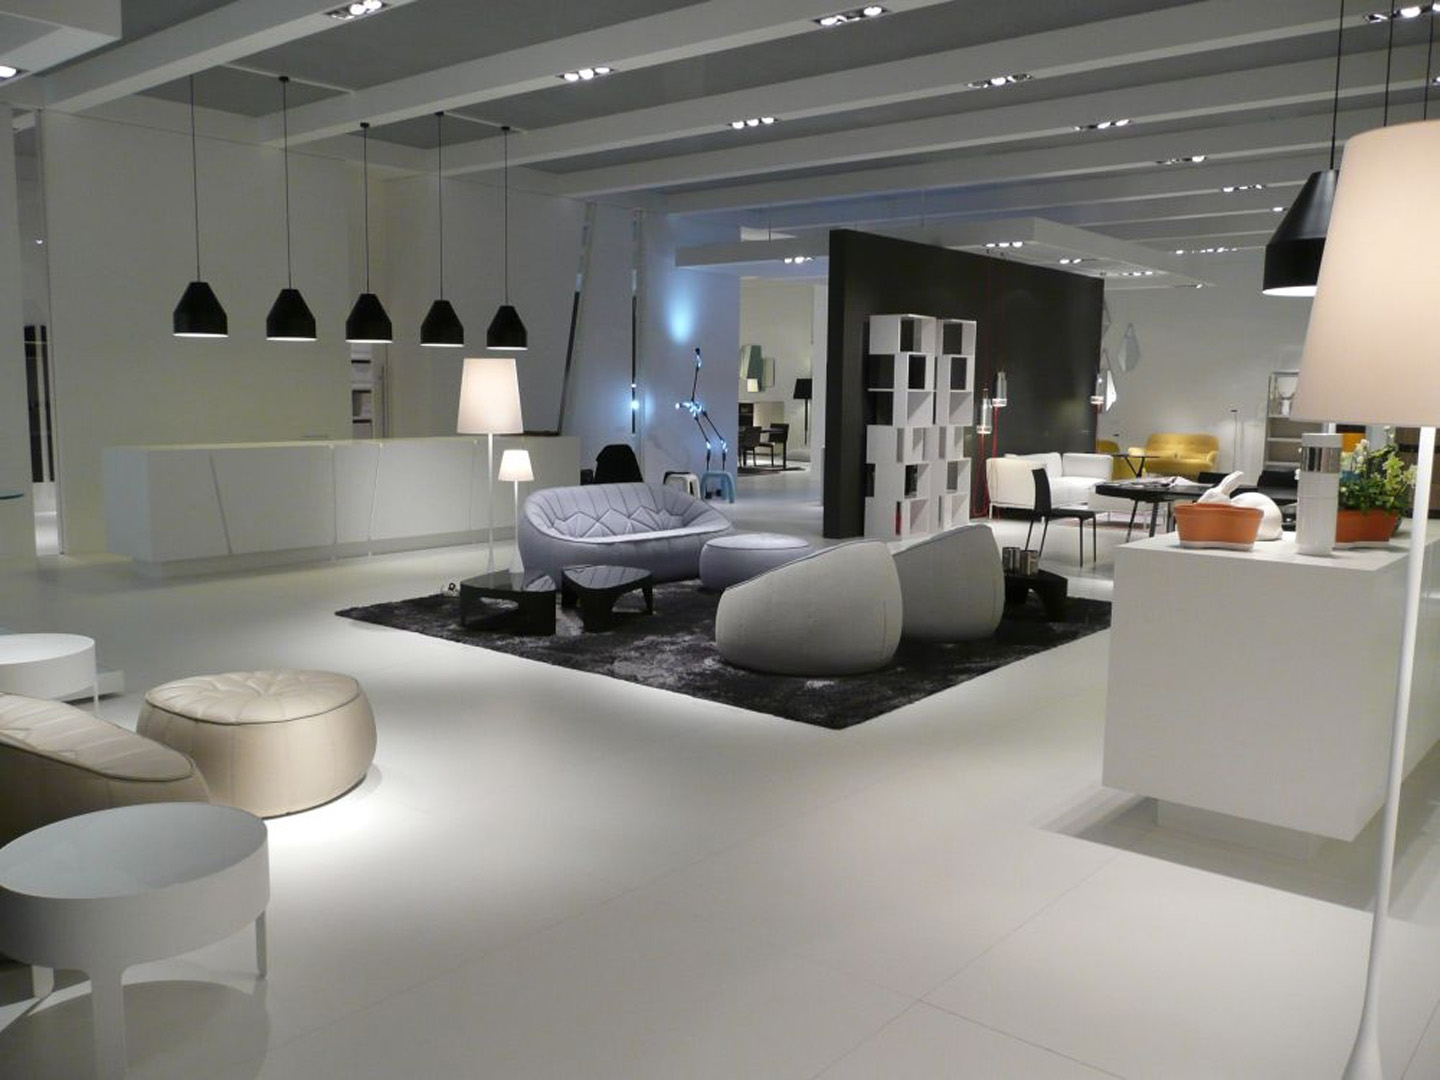 ligne roset viva messe und ausstellungsbau gmbh. Black Bedroom Furniture Sets. Home Design Ideas